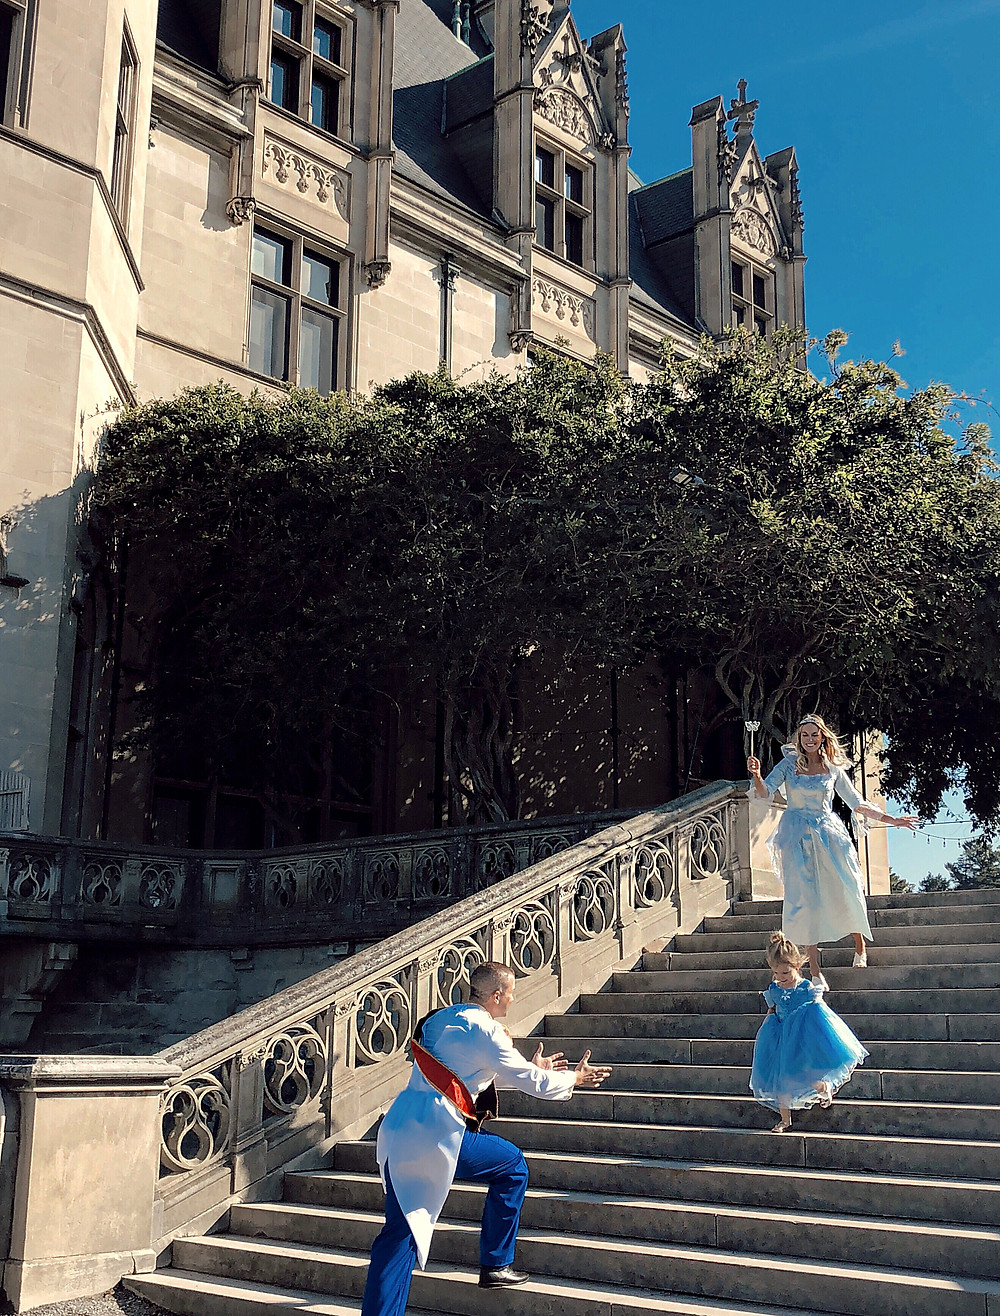 A family dressed up in characters from Cinderella reenact a scene on the library steps of the Biltmore House.